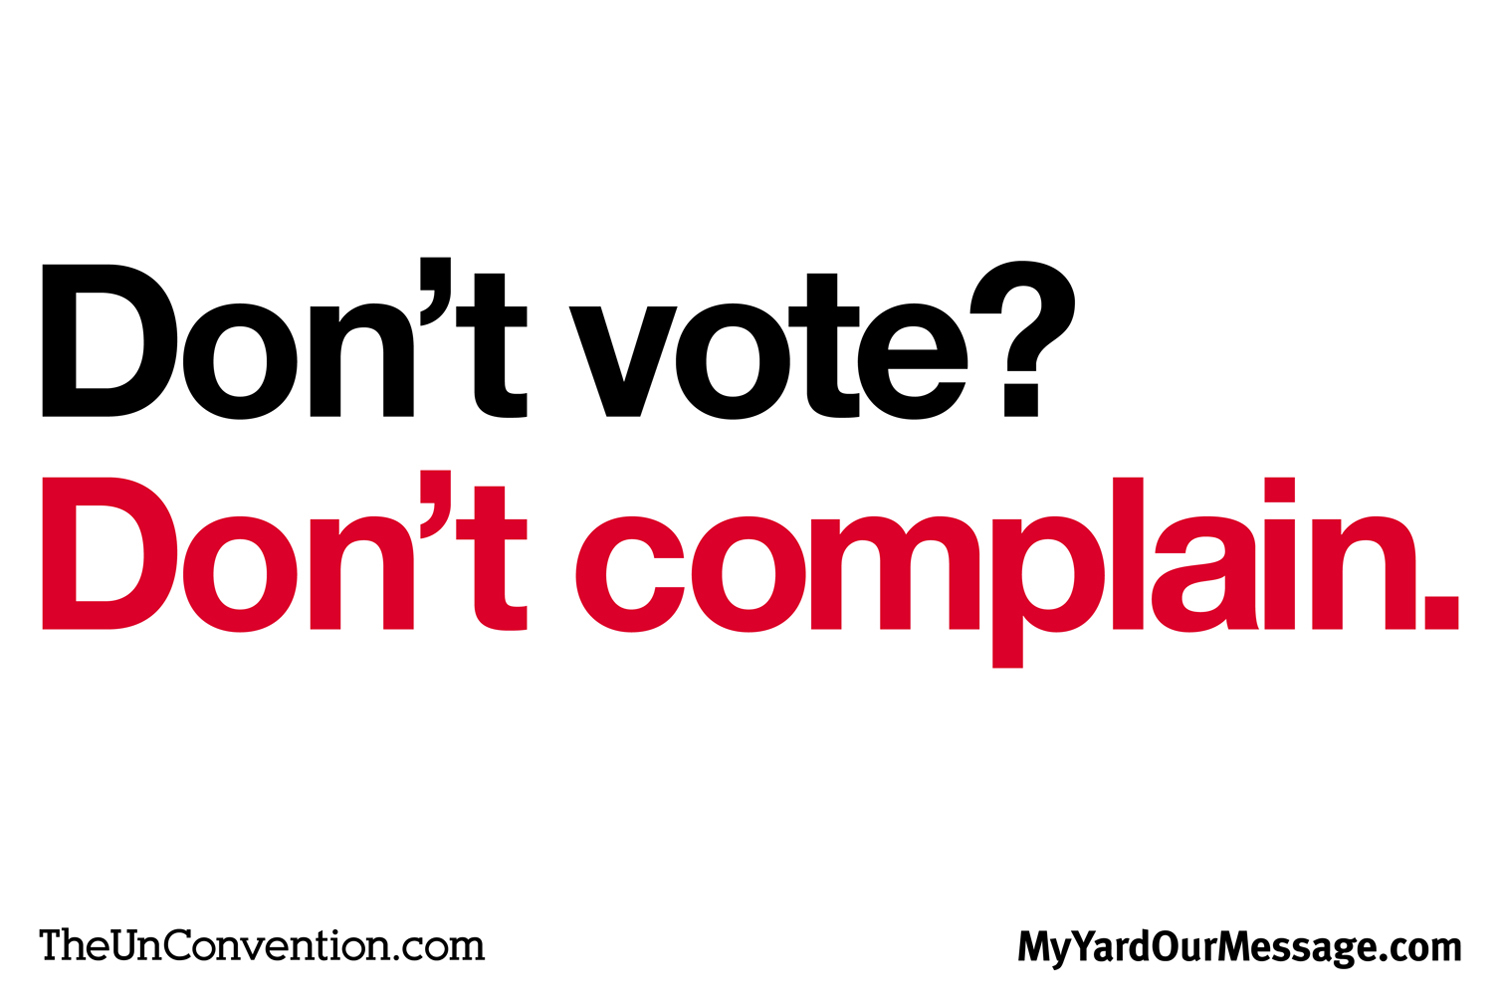 Don't vote? Don't complain.